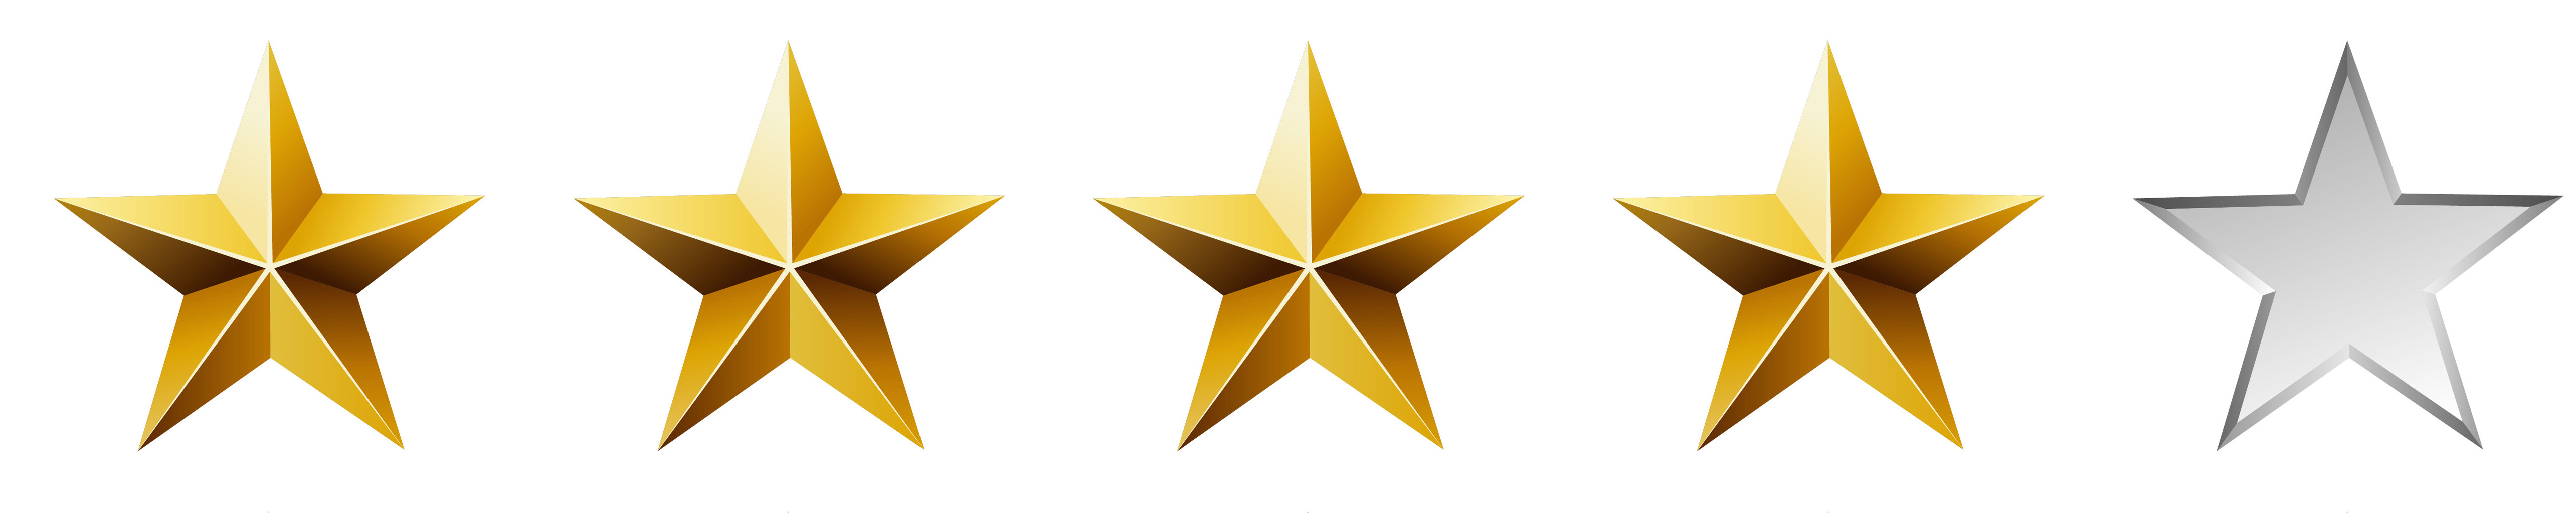 Image result for 4 stars